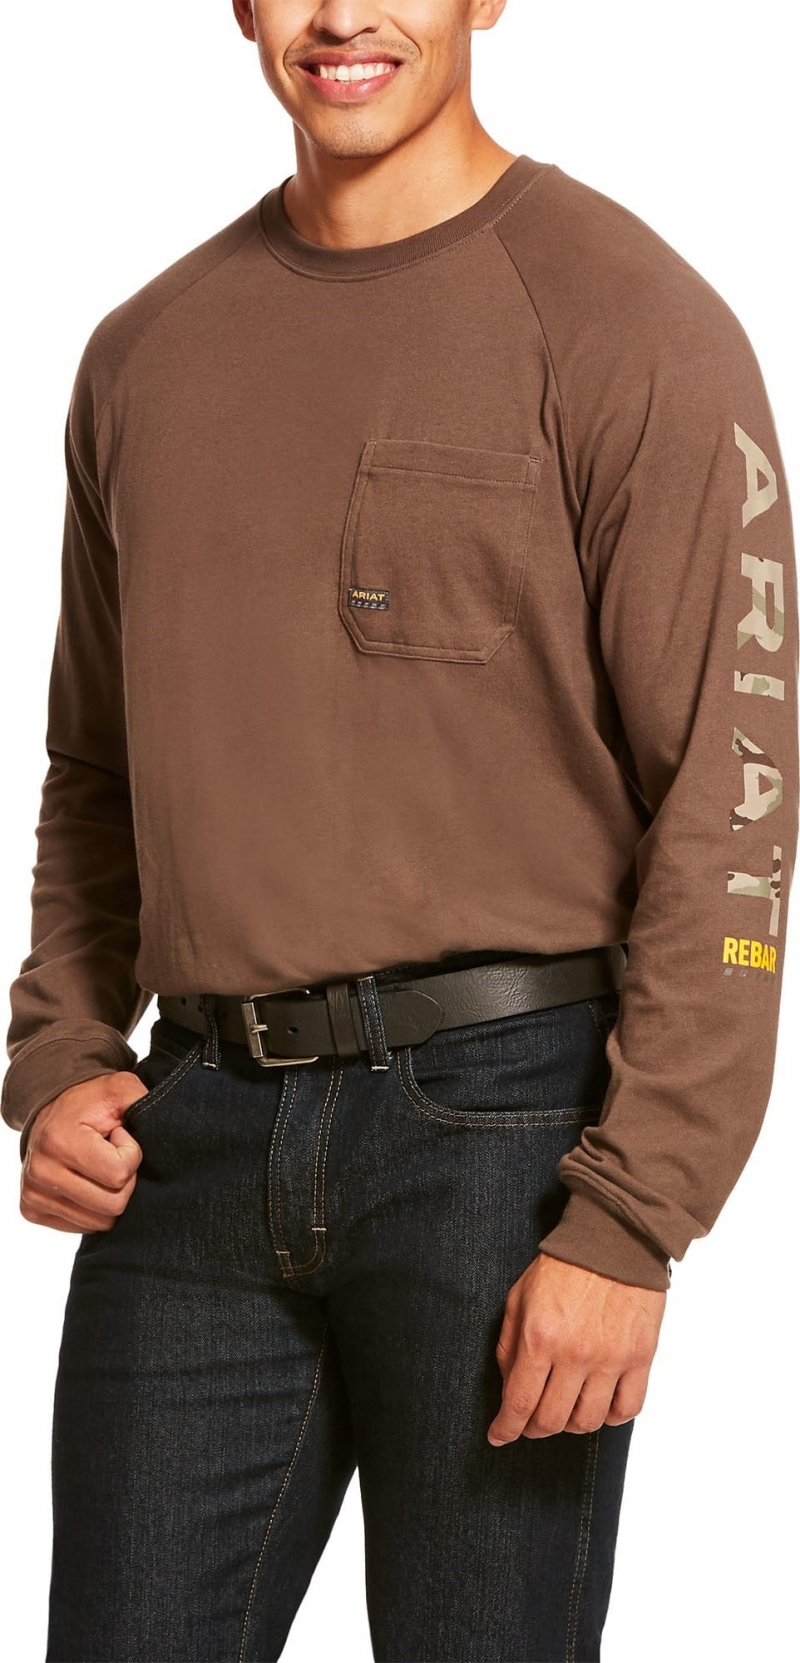 Ariat Rebar Cottonstrong Graphic Crewneck L/S T-Shirt - Moss